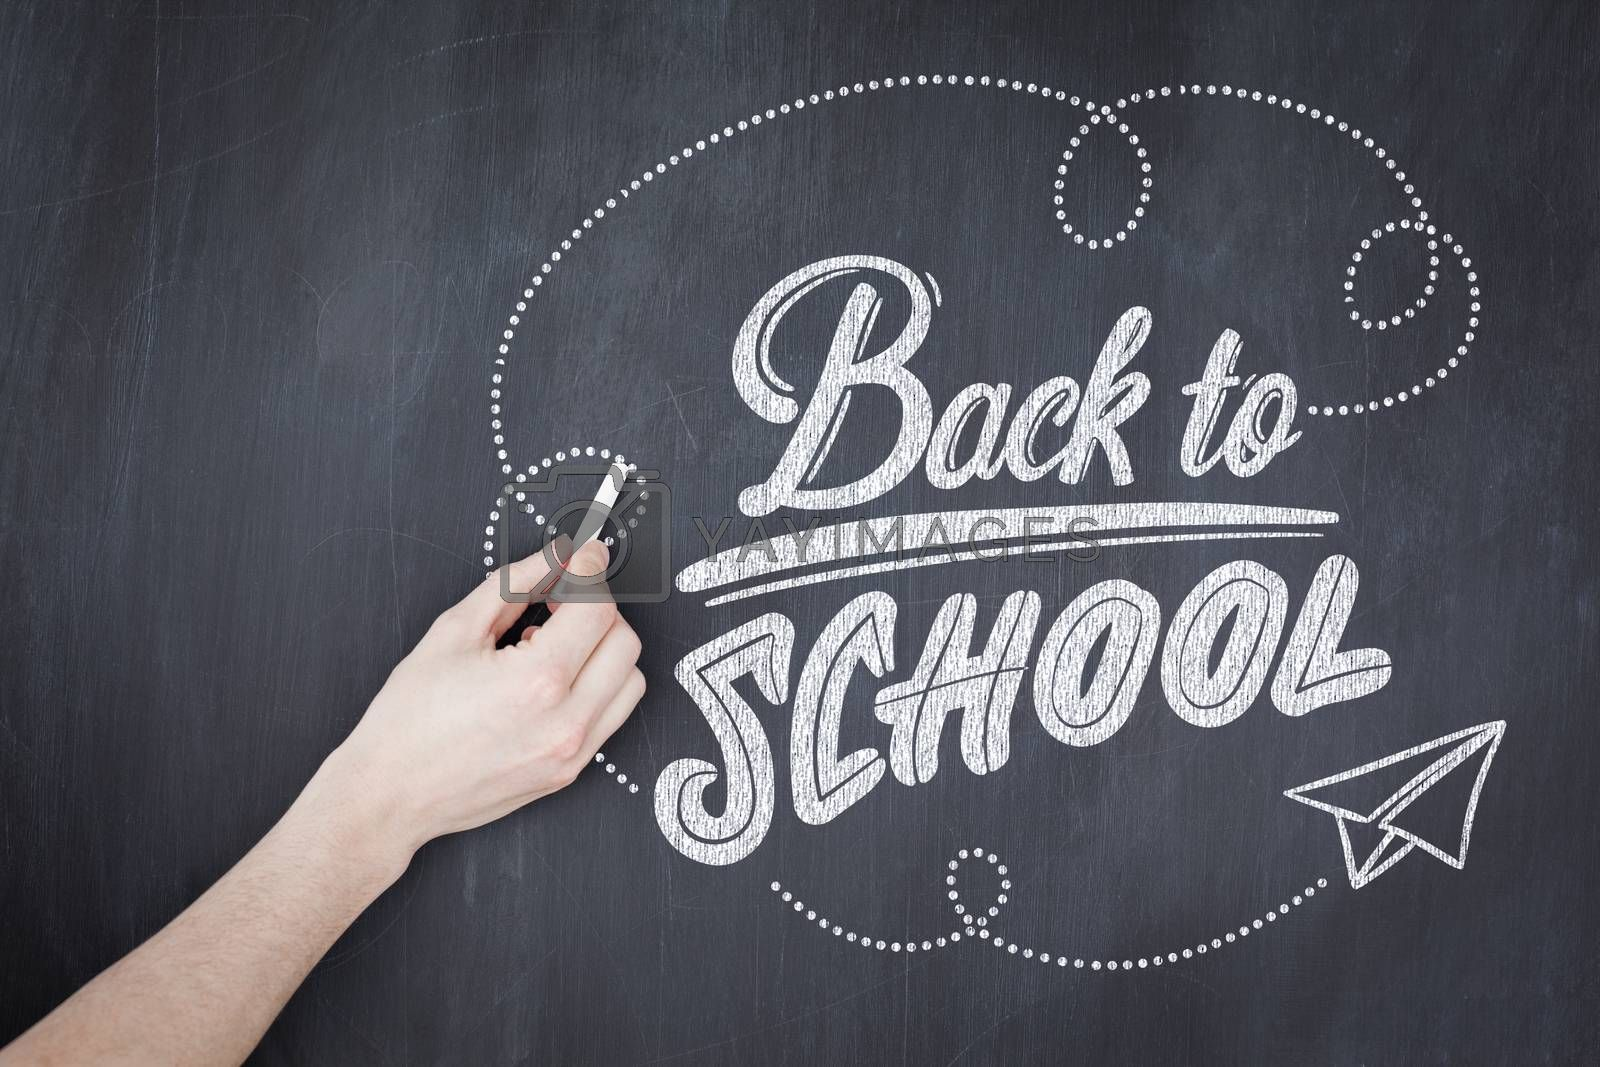 back to school against hand writing with chalk on board